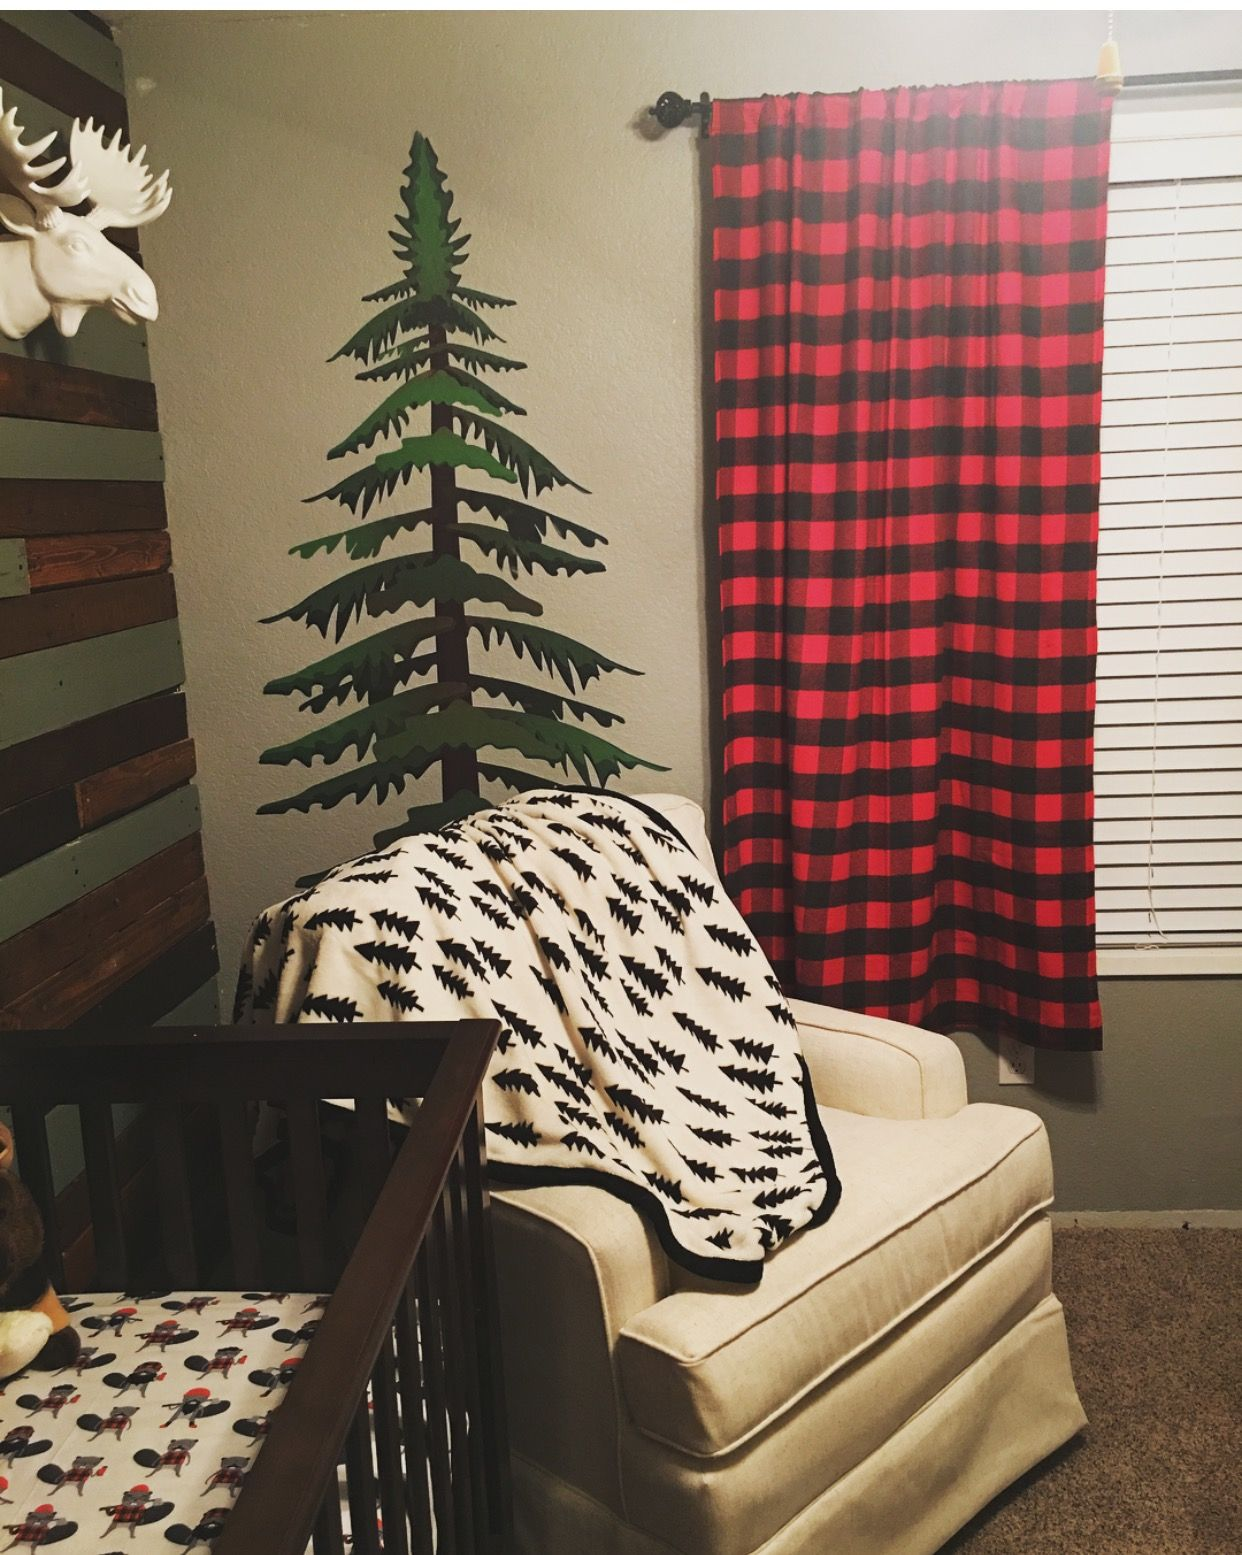 Lumberjack Nursery Nursing Area With Moose Head And Pine Tree Decal Homemade Buffalo Plaid Curtains